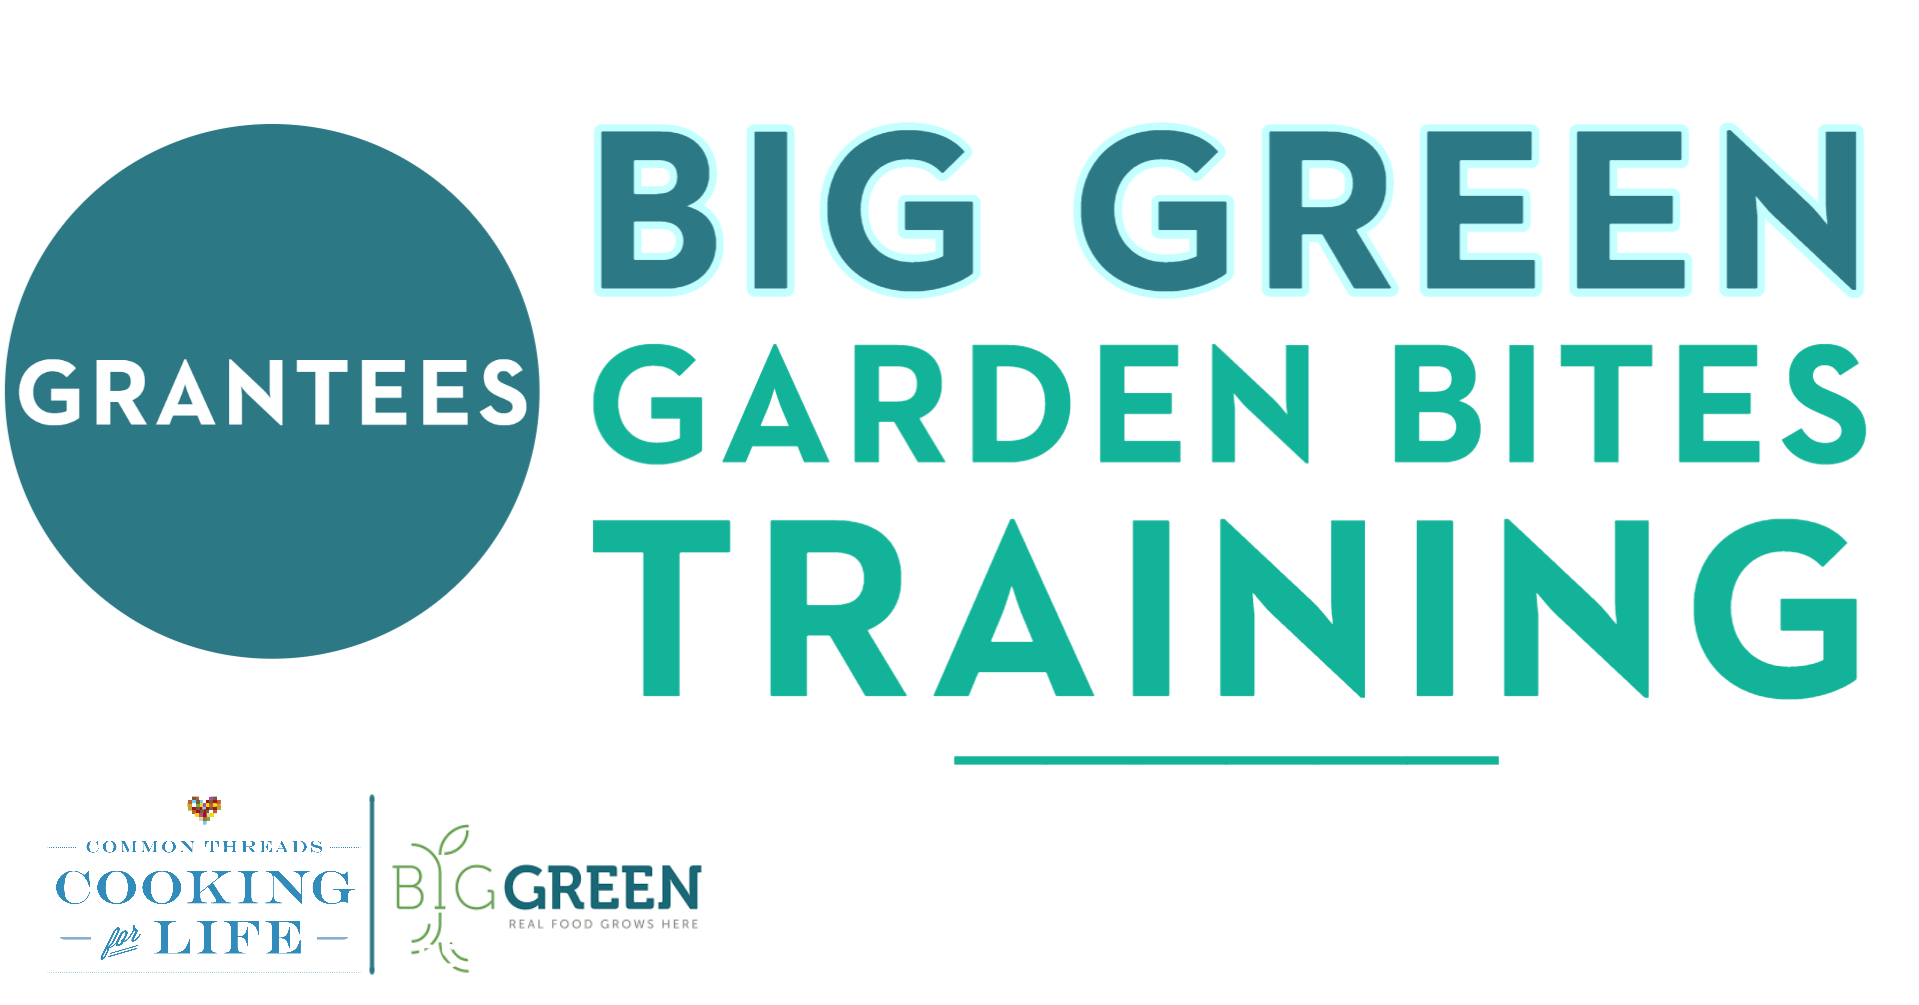 Big Green: Garden Bites Training for Grantees